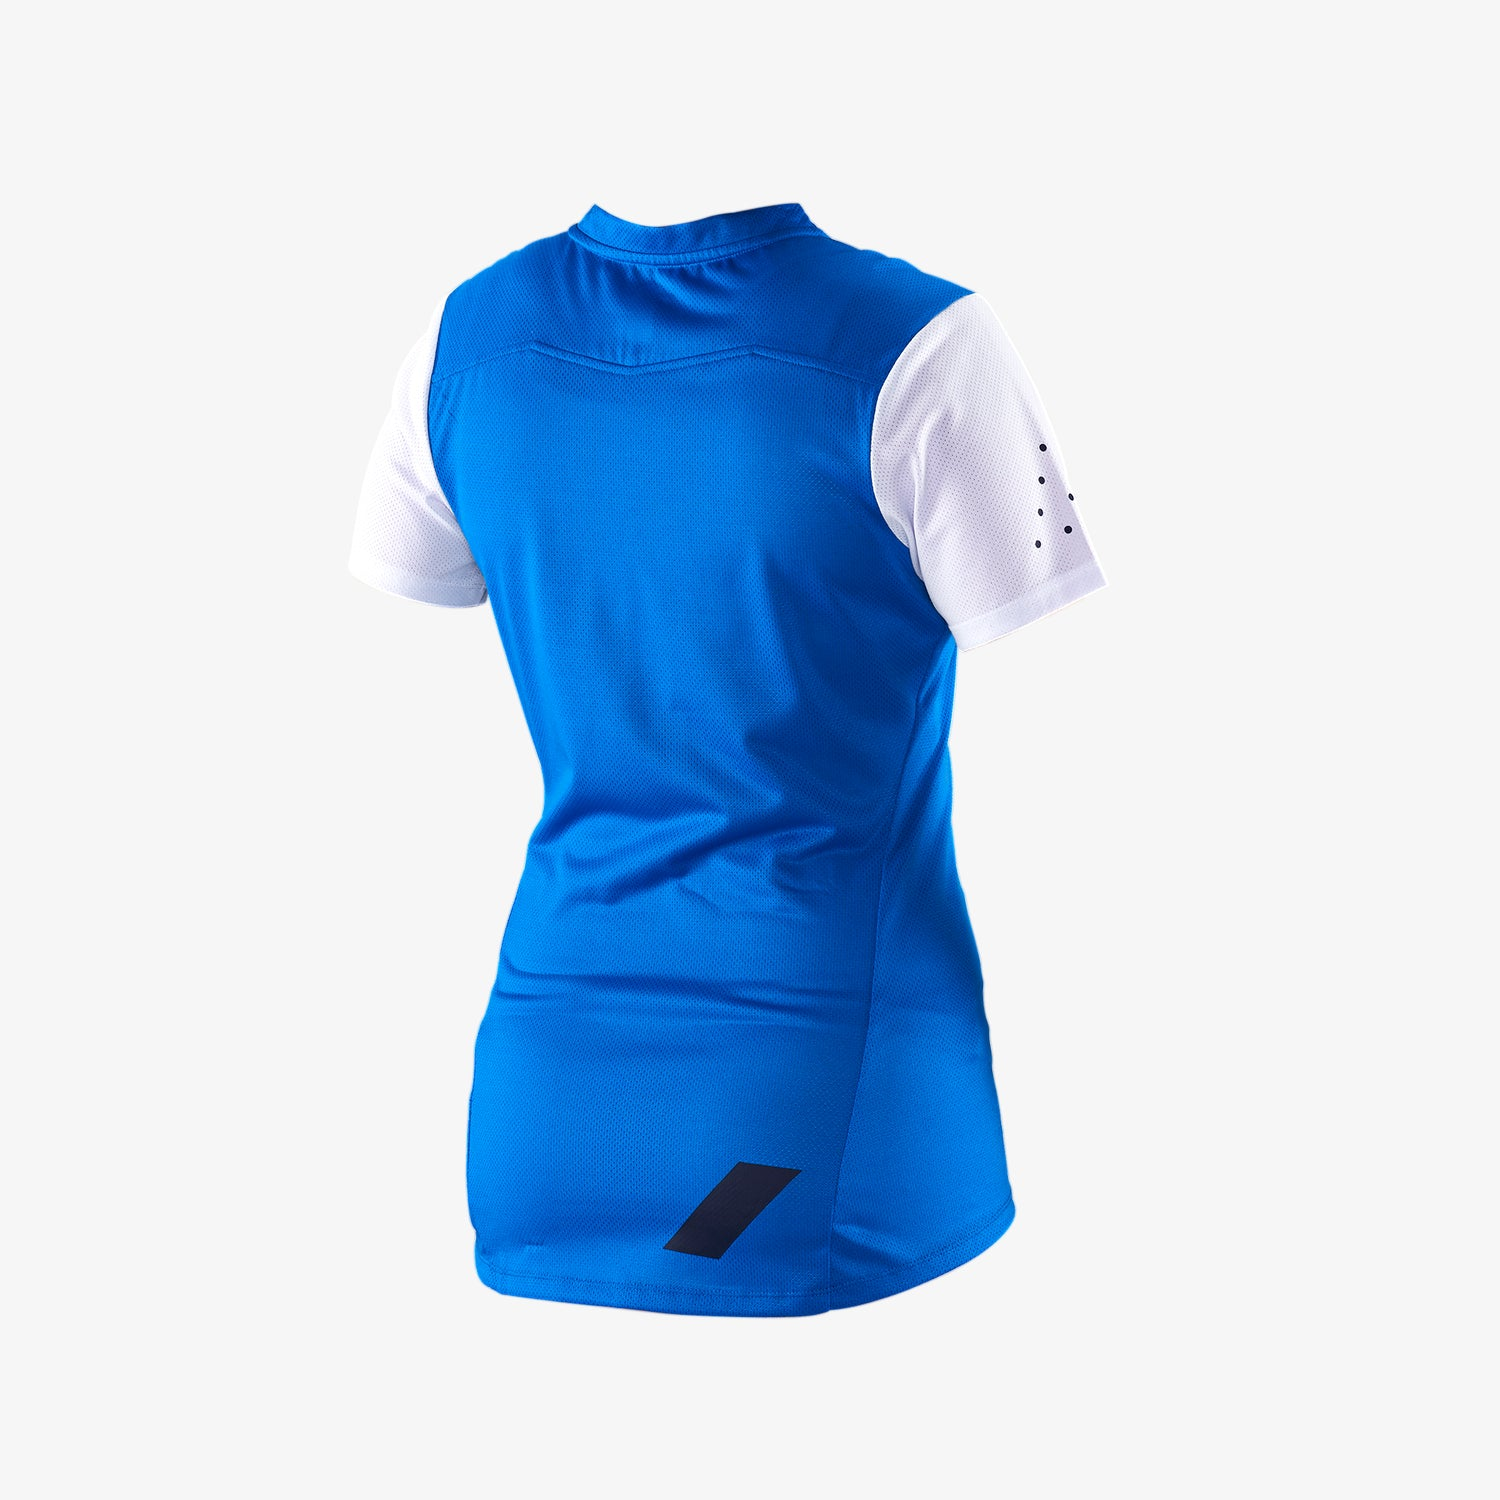 RIDECAMP Jersey - Women's - Blue